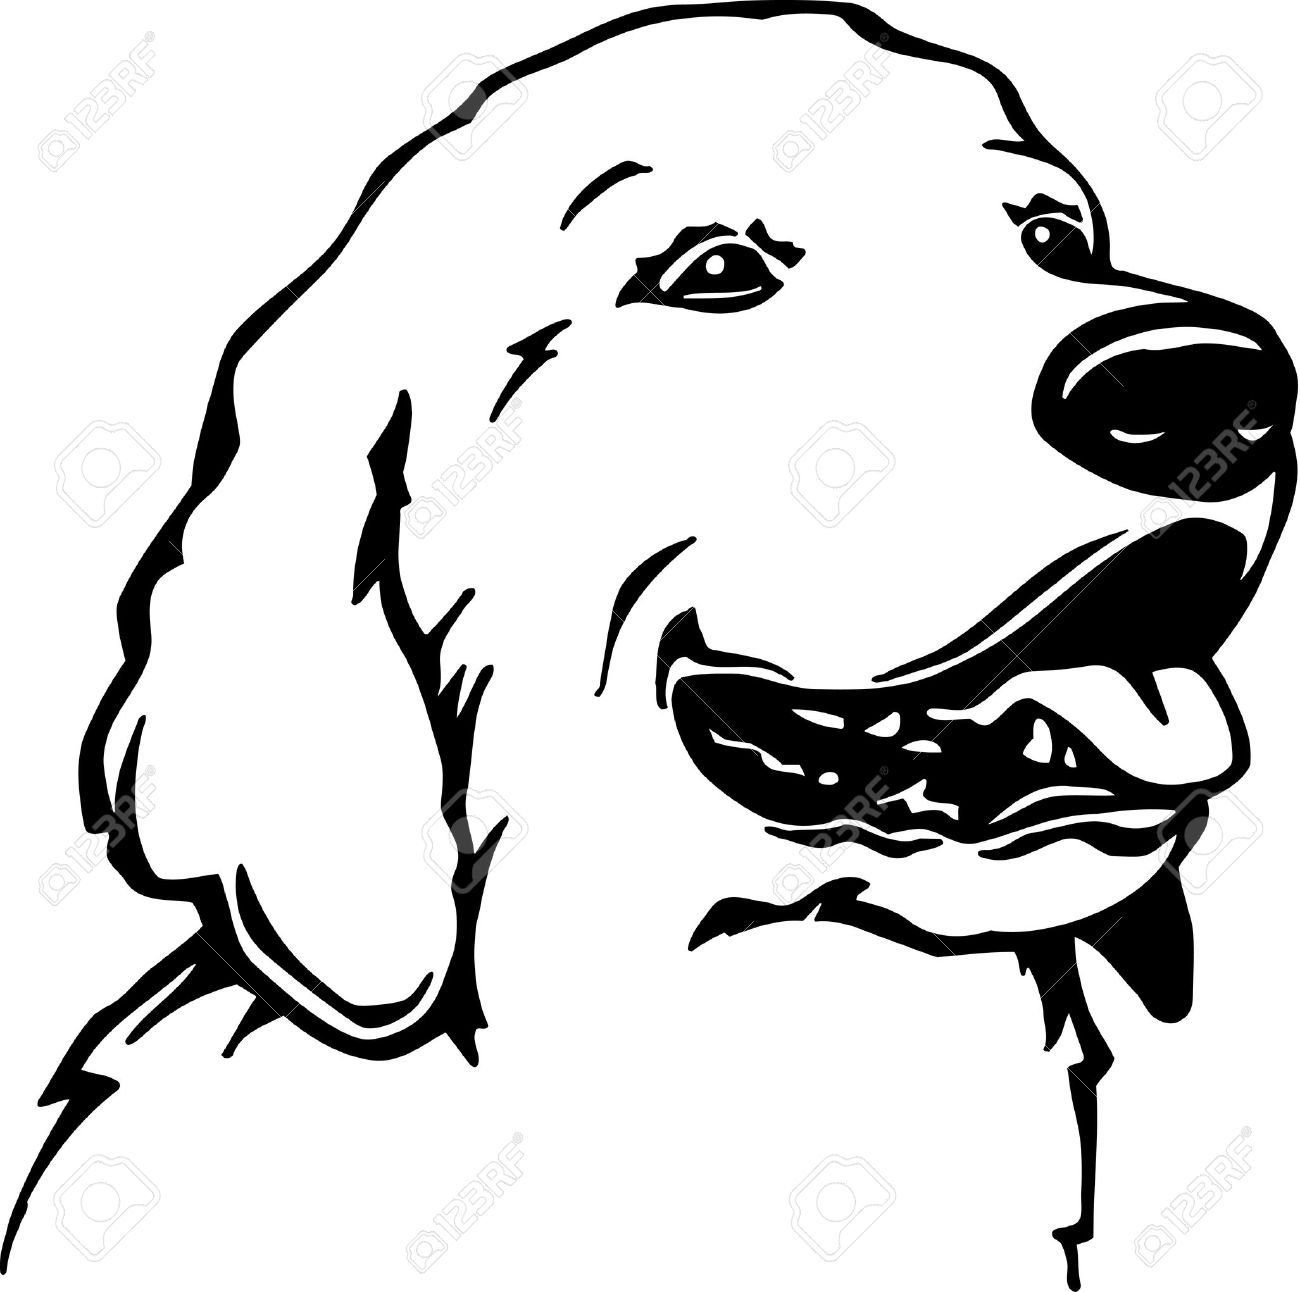 Golden Retriever Cliparts Stock Vector And Royalty Free